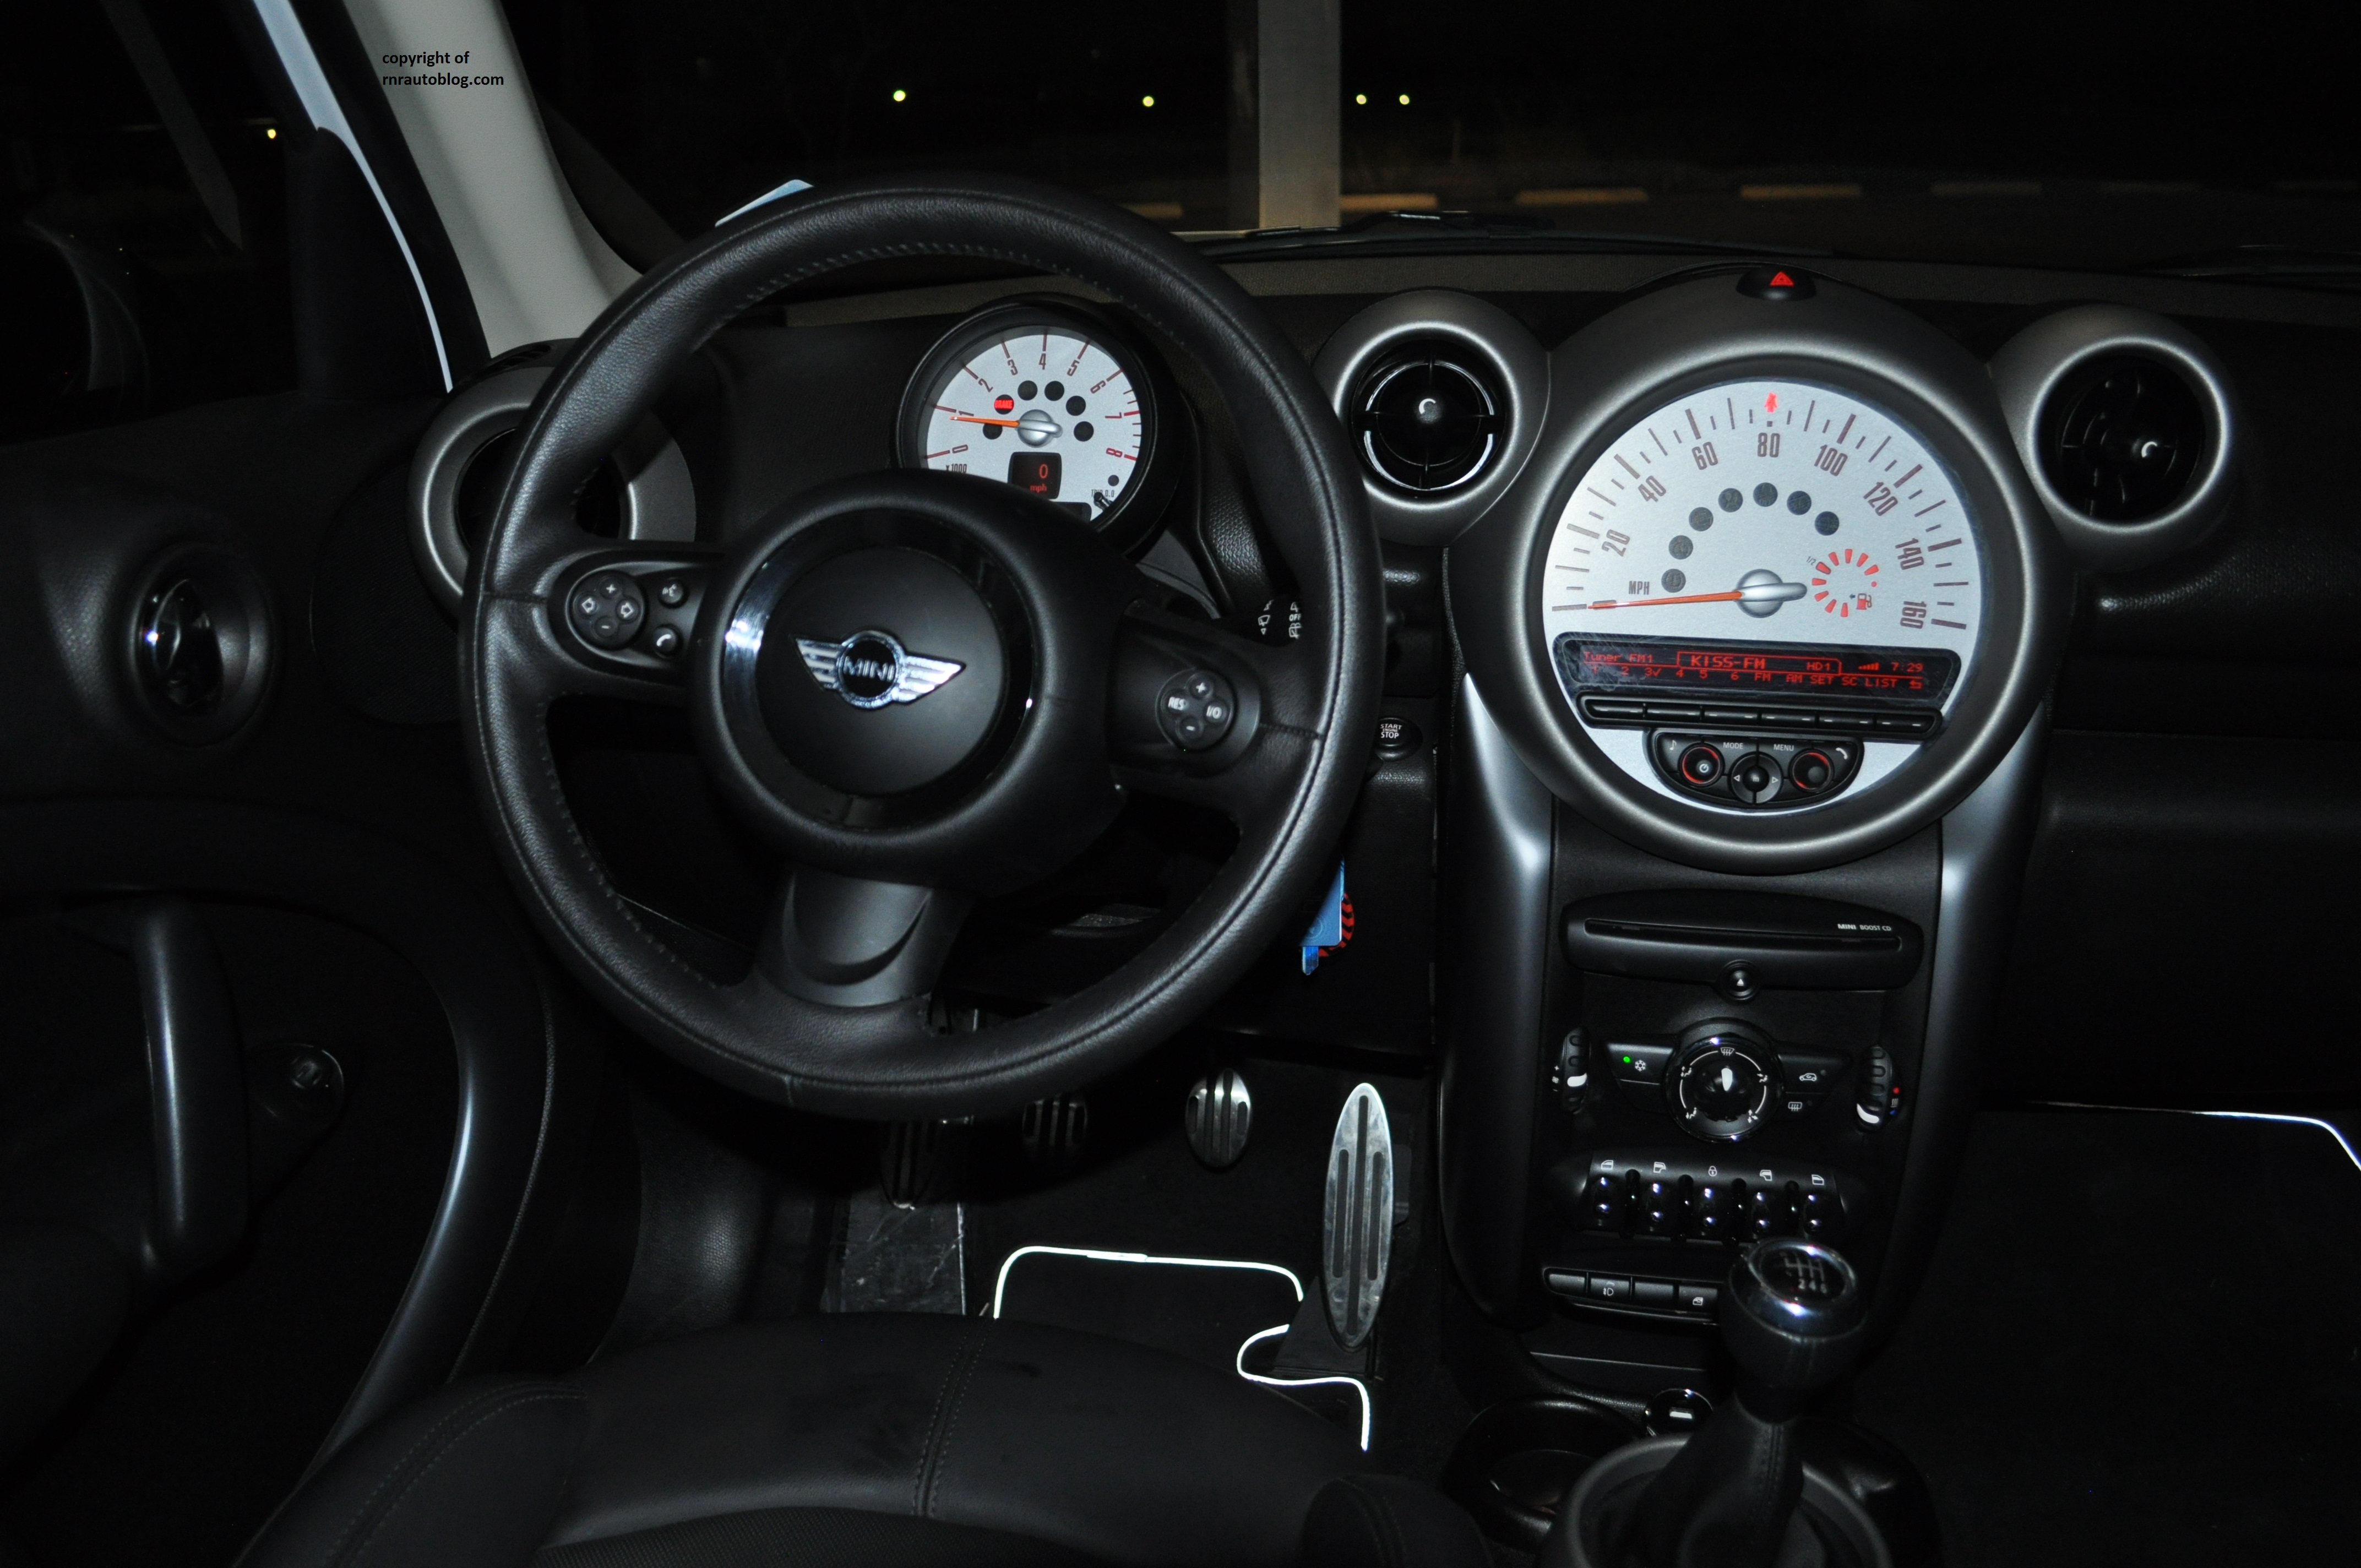 2012 mini cooper countryman s review rnr automotive blog 2014 mini cooper countryman interior